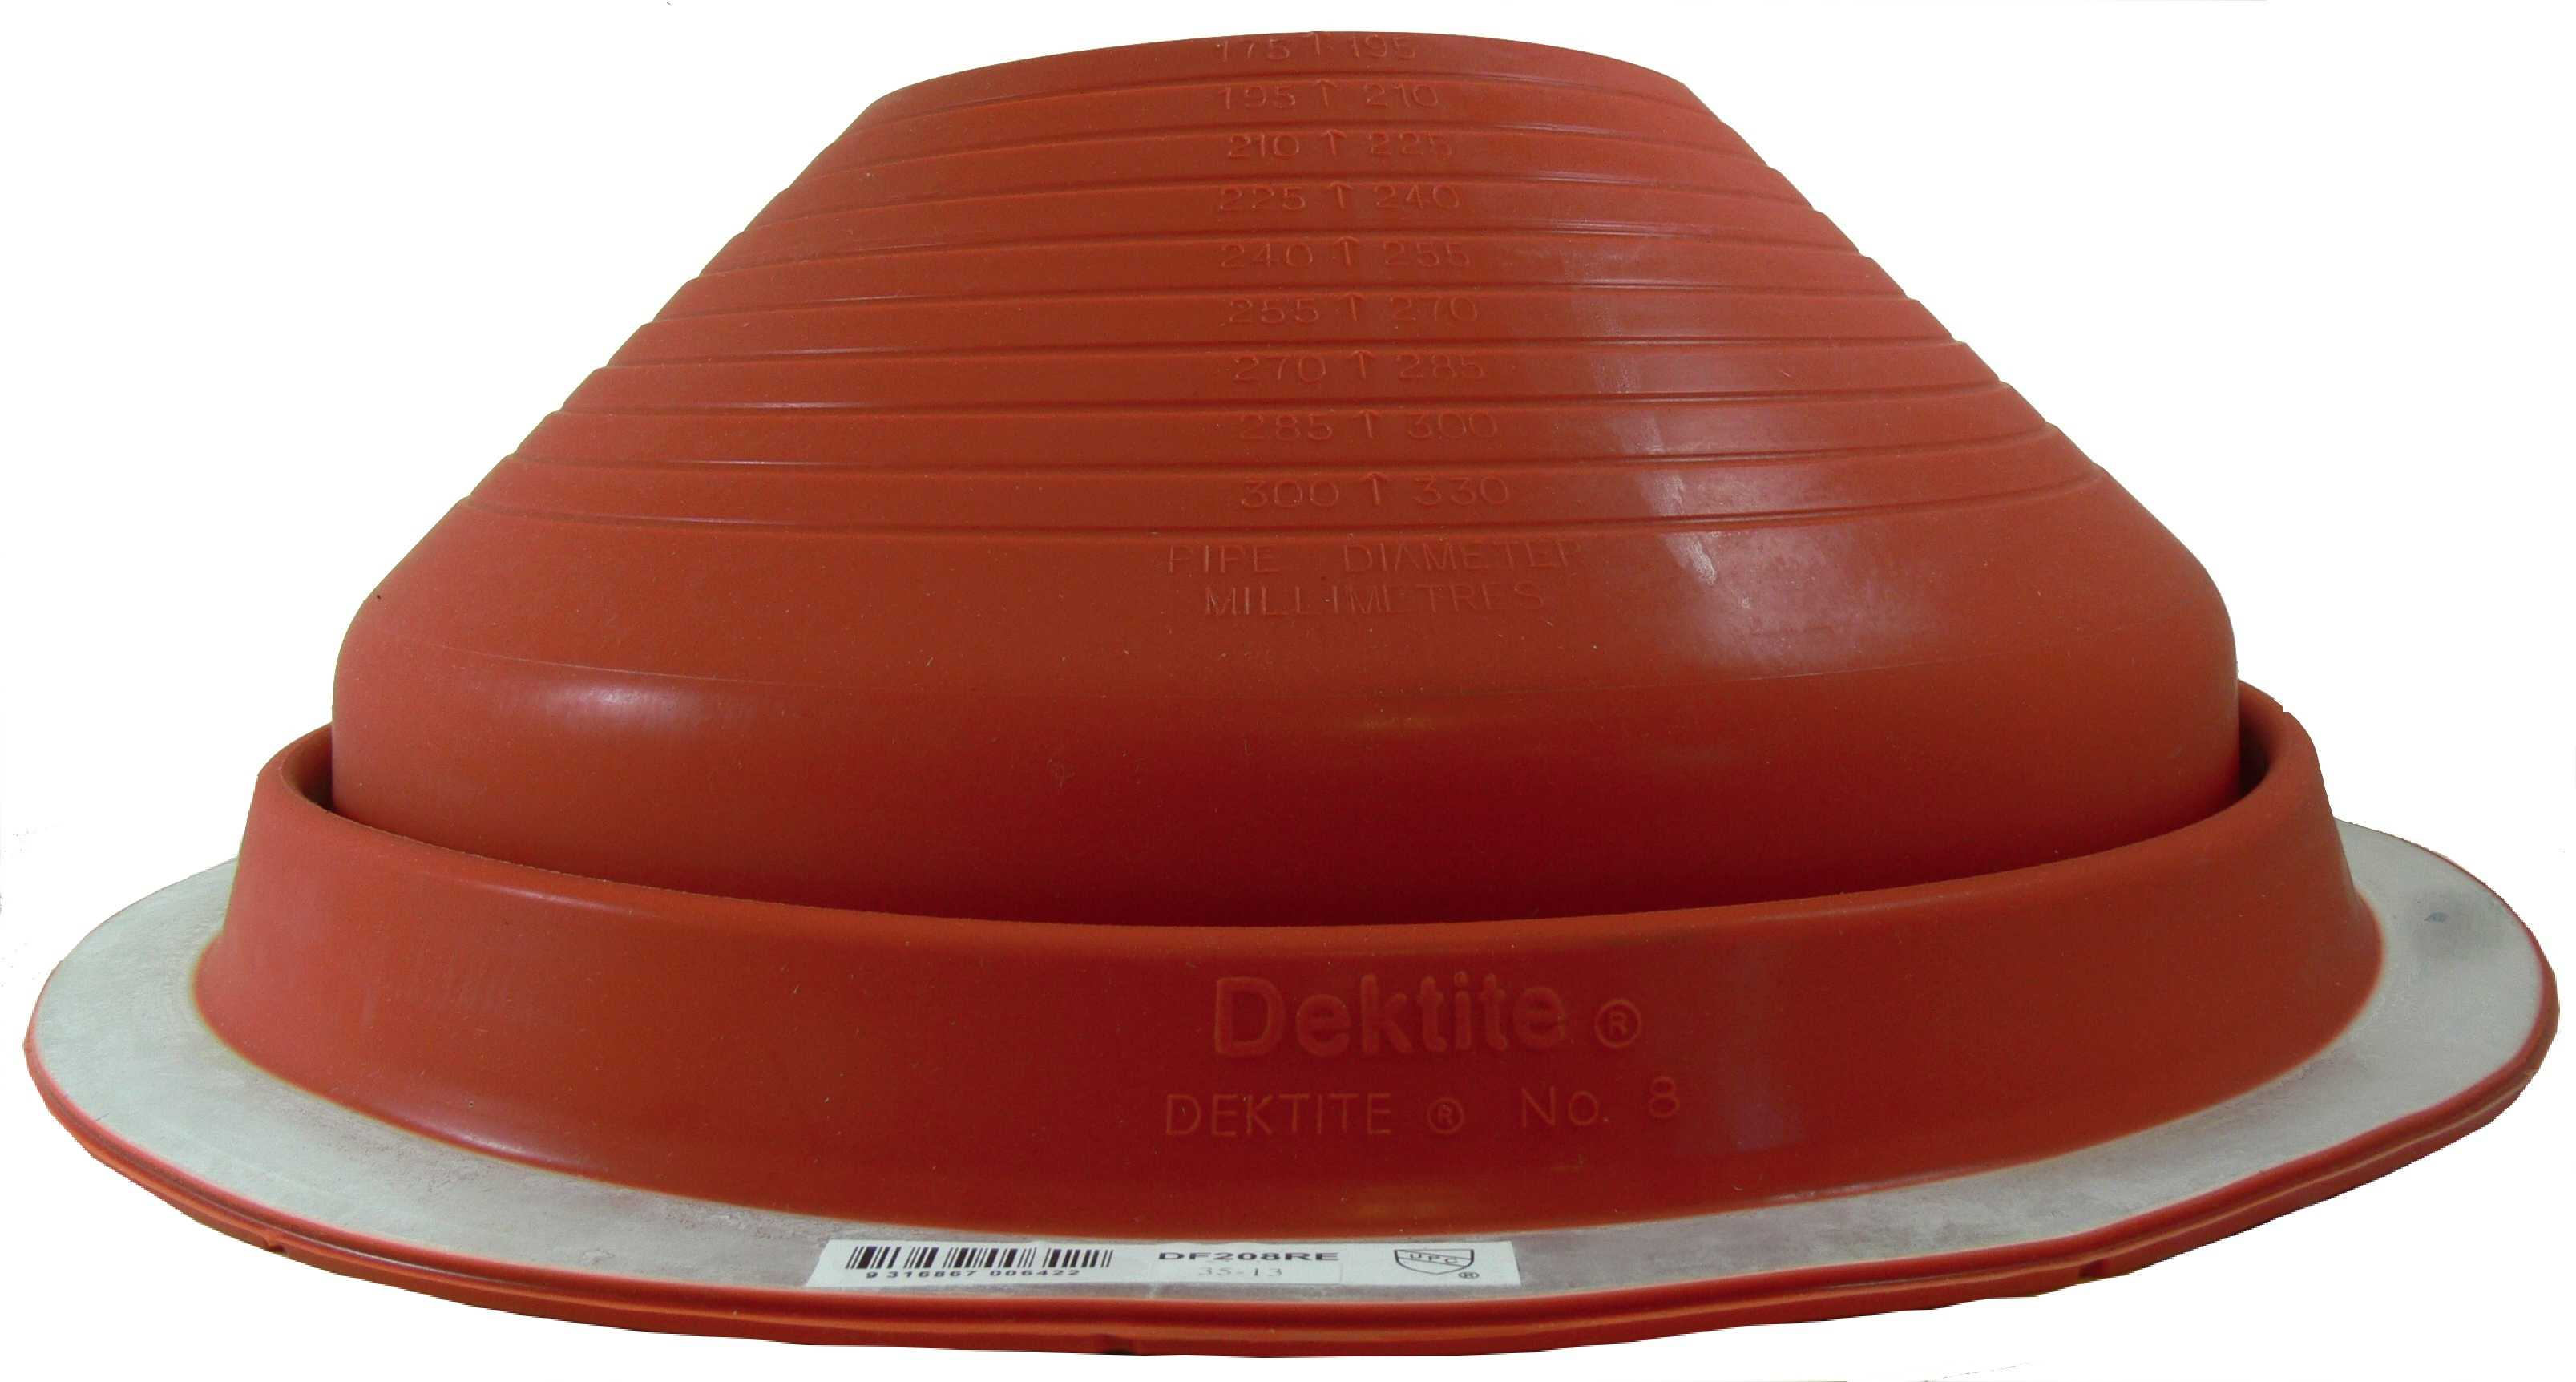 DEKTITE ROUND BASE METAL ROOFING PIPE FLASHING BOOT: #8 RED High Temp Silicone Flexible Pipe Flashing Dektite (for OD pipe sizes 7' - 13') - Metal Roof Jack Pipe Boot - Metal Roofing Pipe Flashing